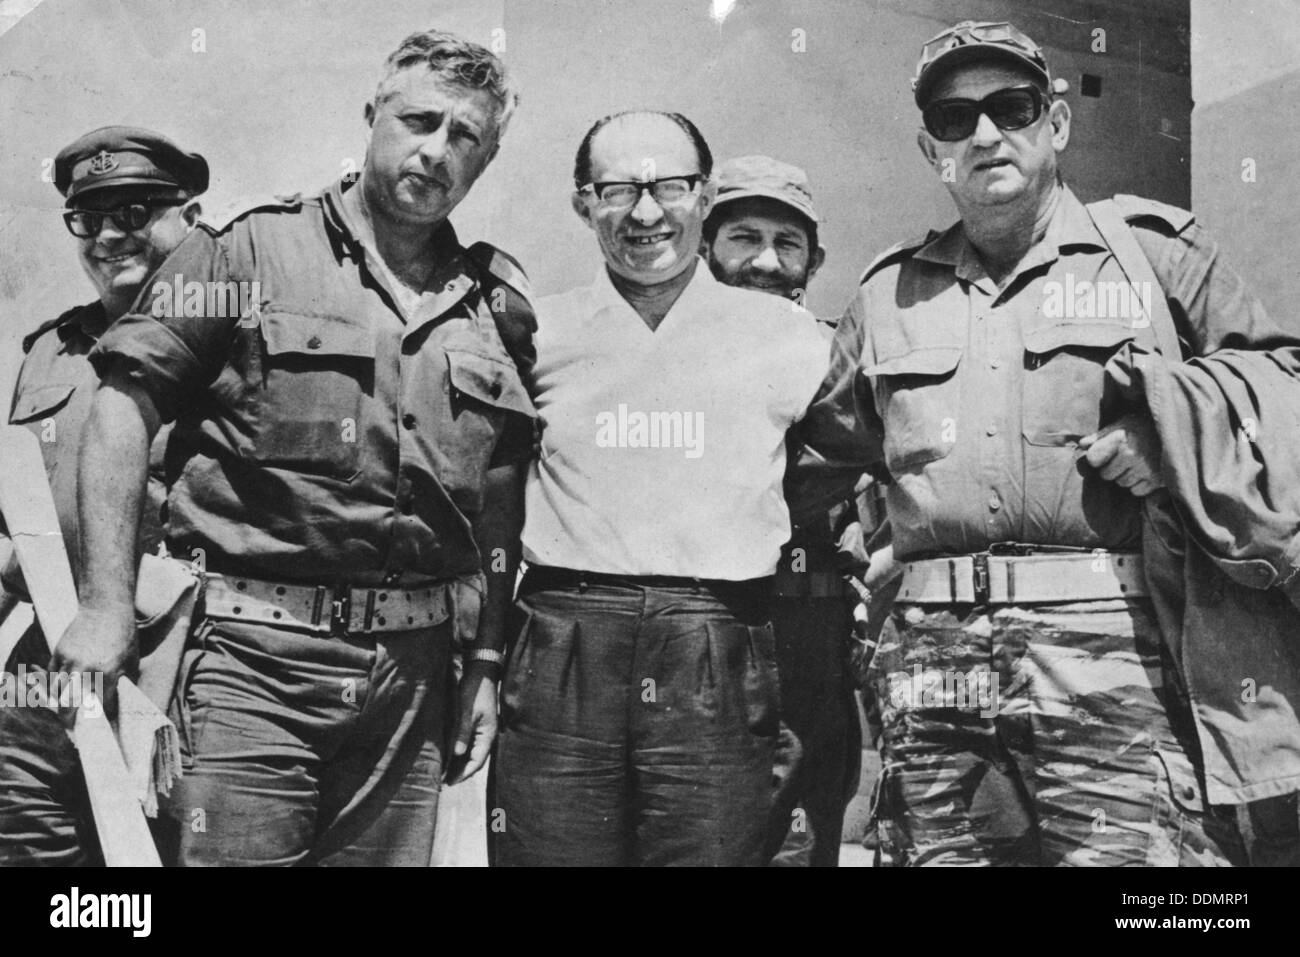 Menachem Begin (1913-1992), 6th Prime Minister of Israel, during the Six Day War, 1967. Stock Photo